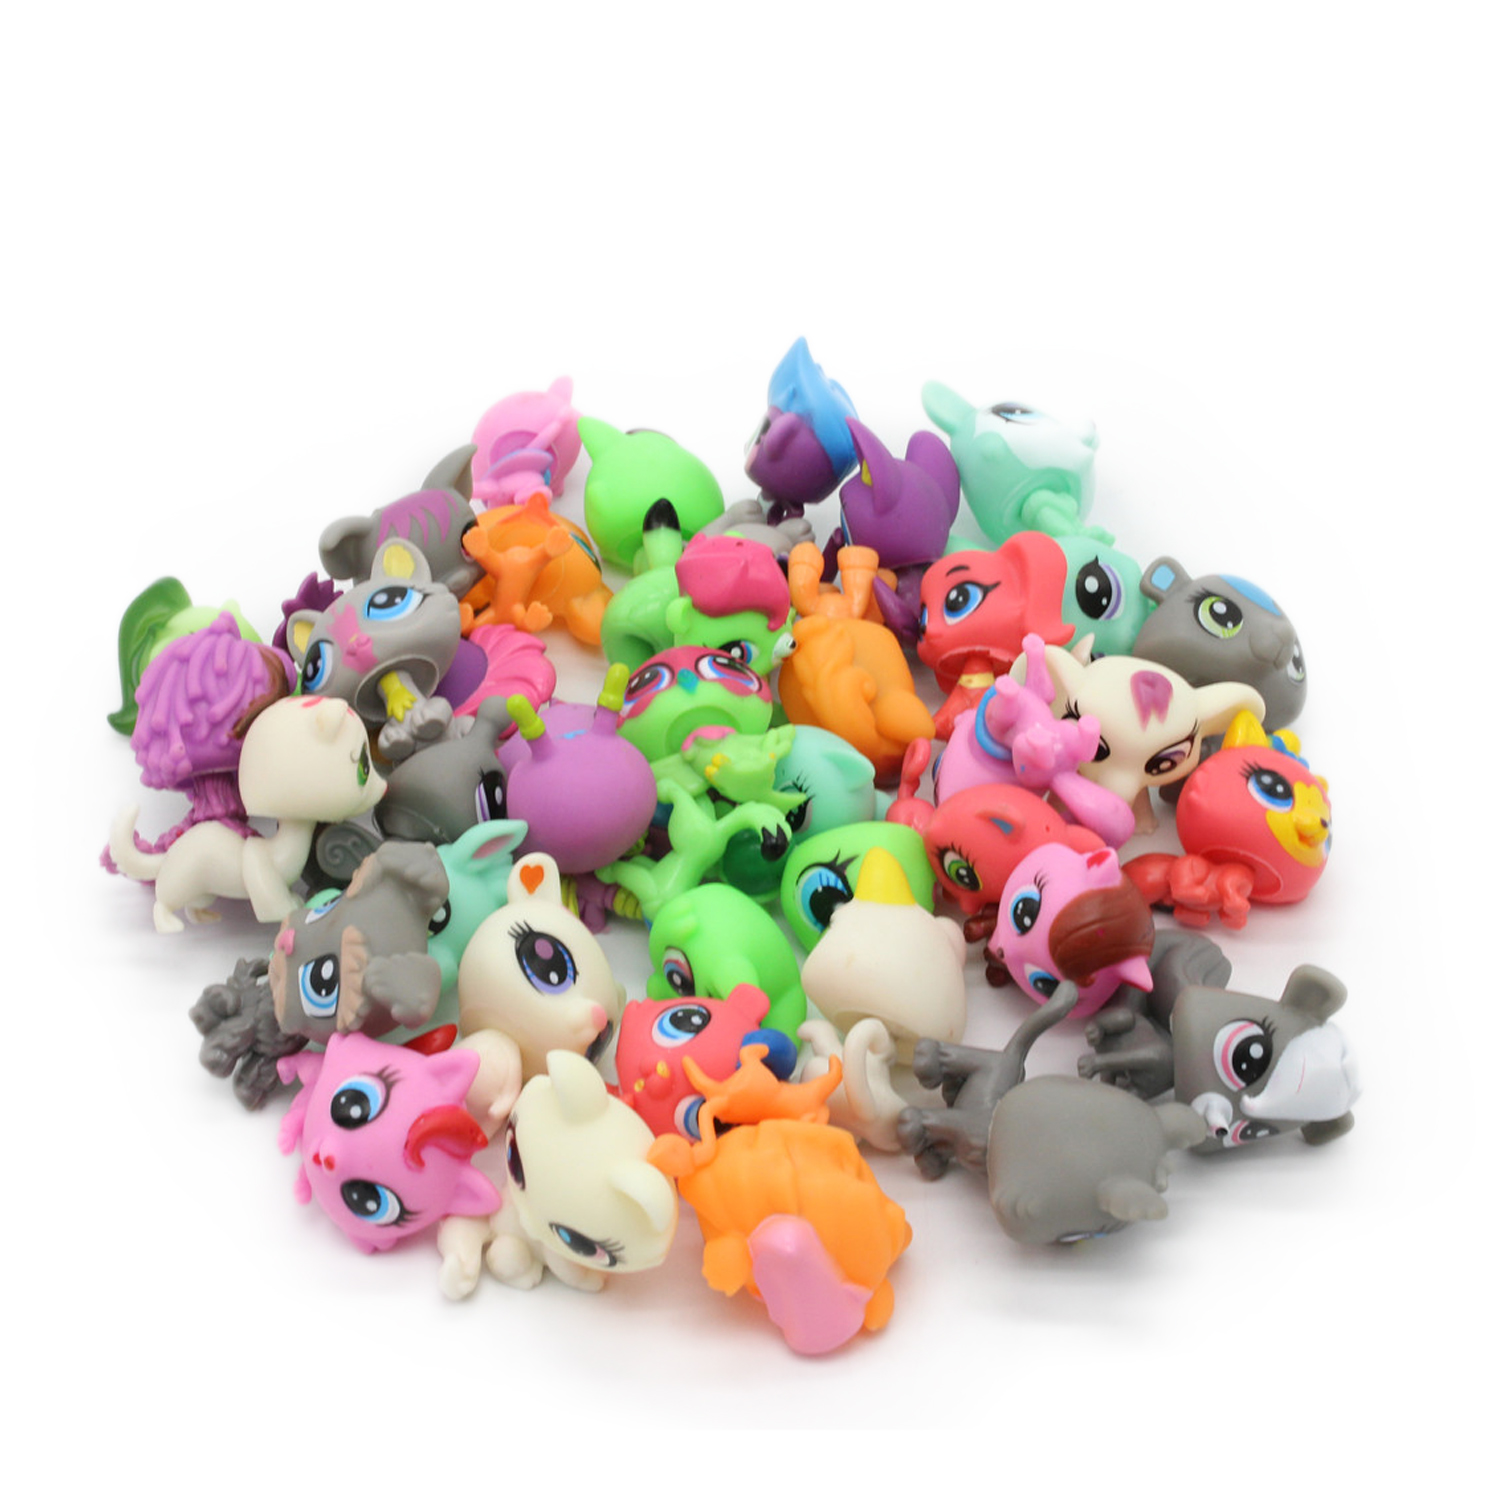 LPS New Style lps Toy bag 32Pcs/bag Little Pet Shop Mini Toy Animal Cat patrulla canina dog Action Figures Kids toys цена